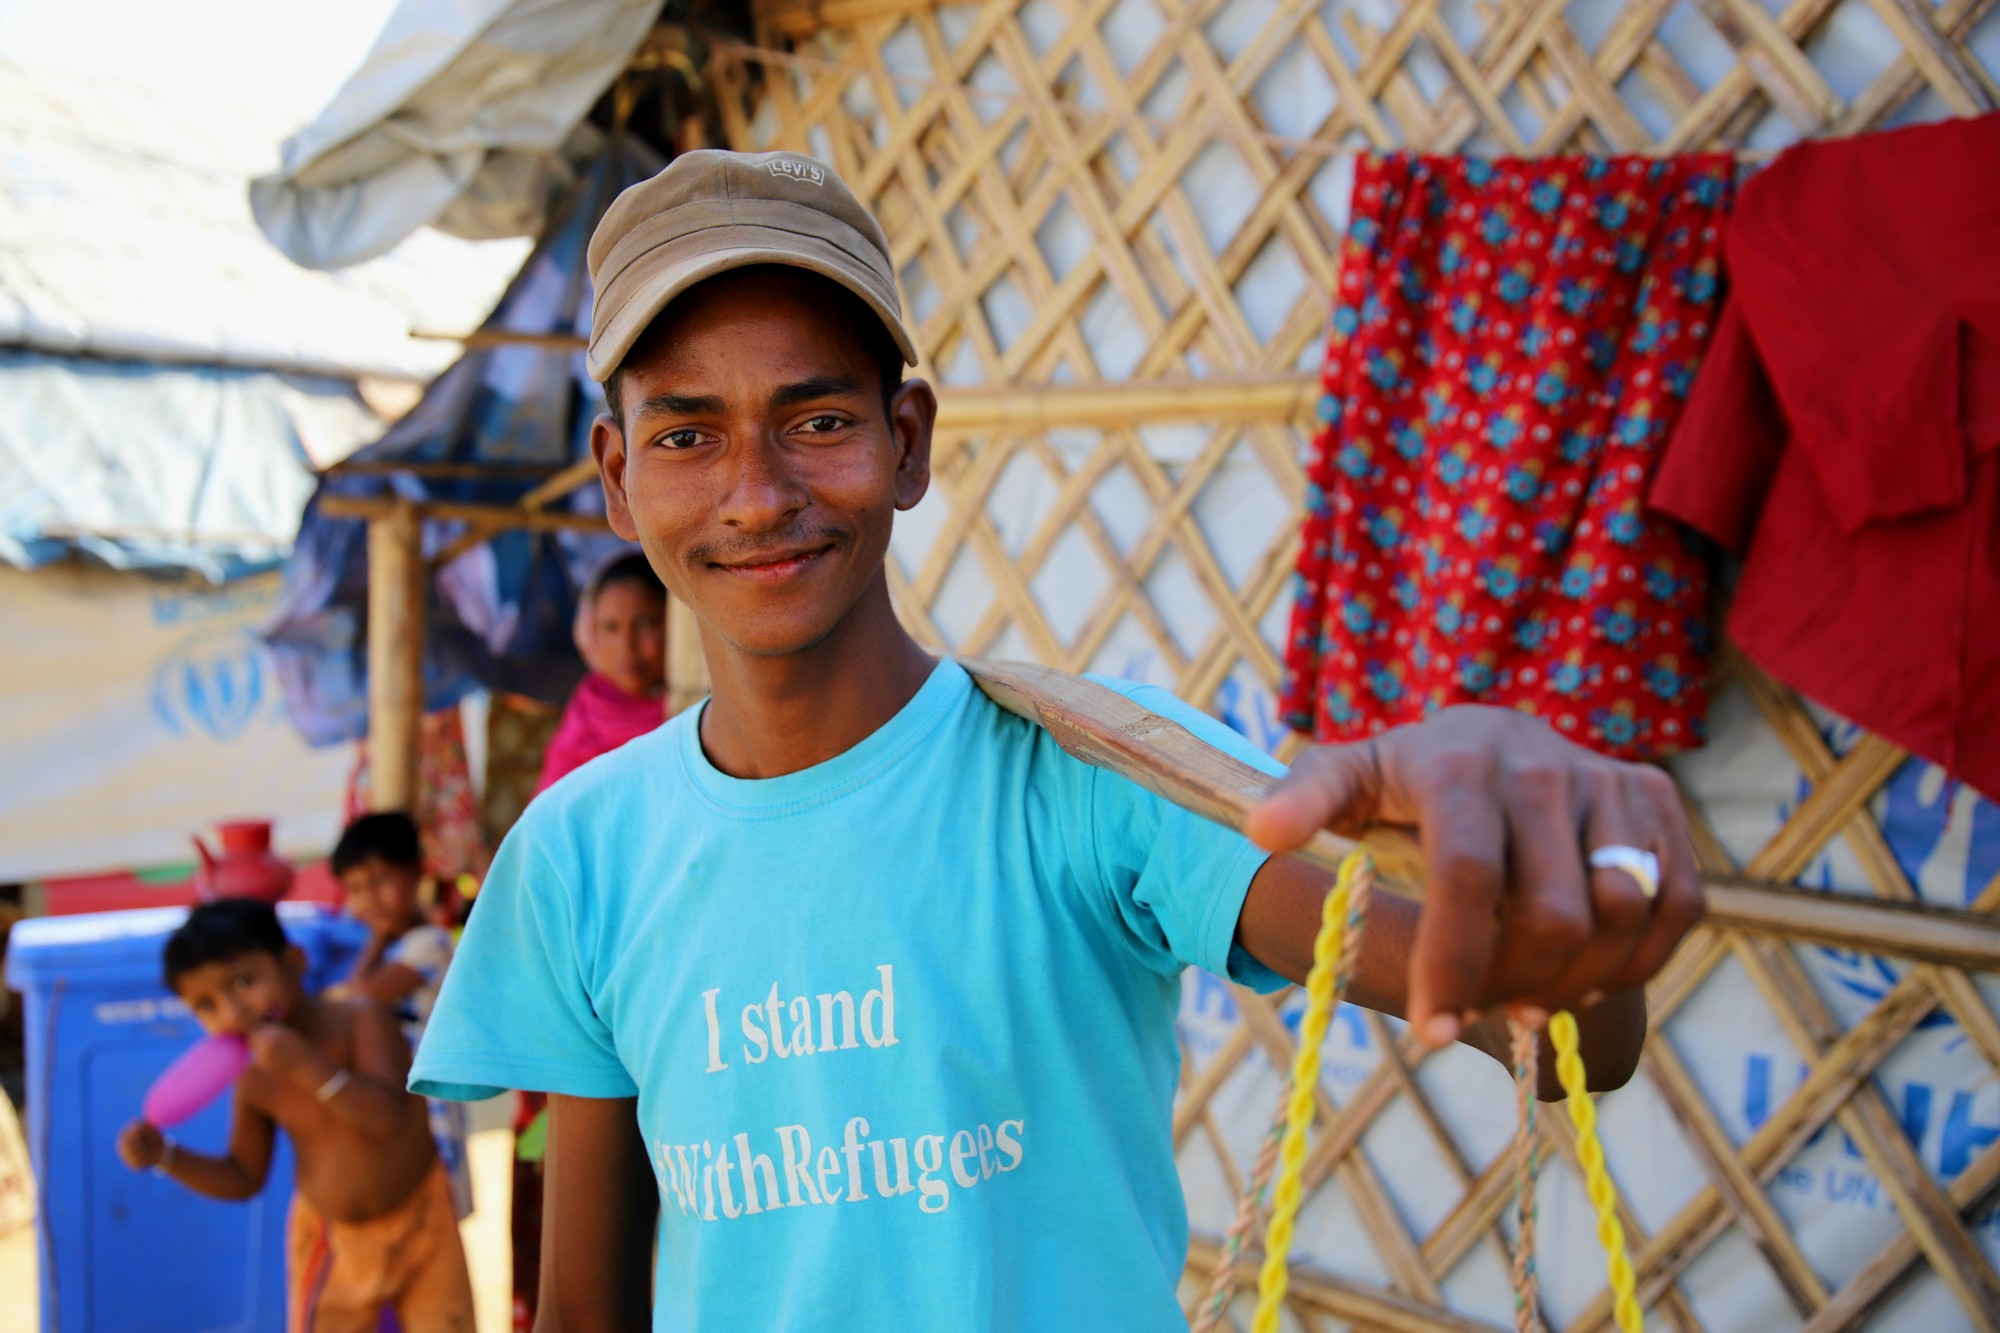 Saidul and his brother have become very popular in the camps, bringing toys and beauty products to people's homes. Photo: WFP/Gemma Snowdon